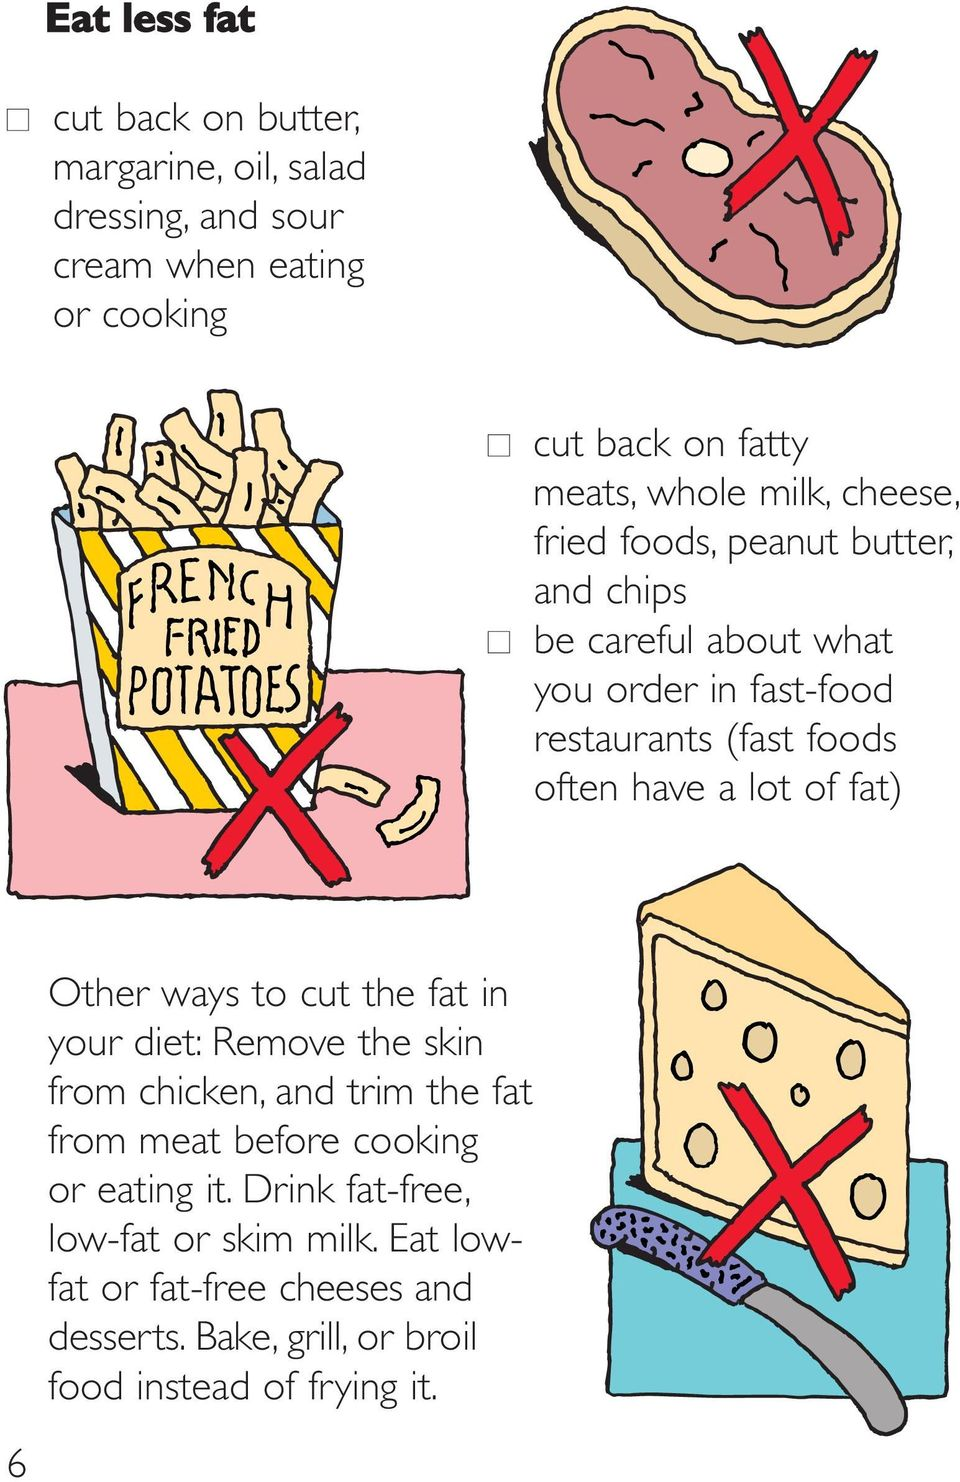 lot of fat) Other ways to cut the fat in your diet: Remove the skin from chicken, and trim the fat from meat before cooking or eating